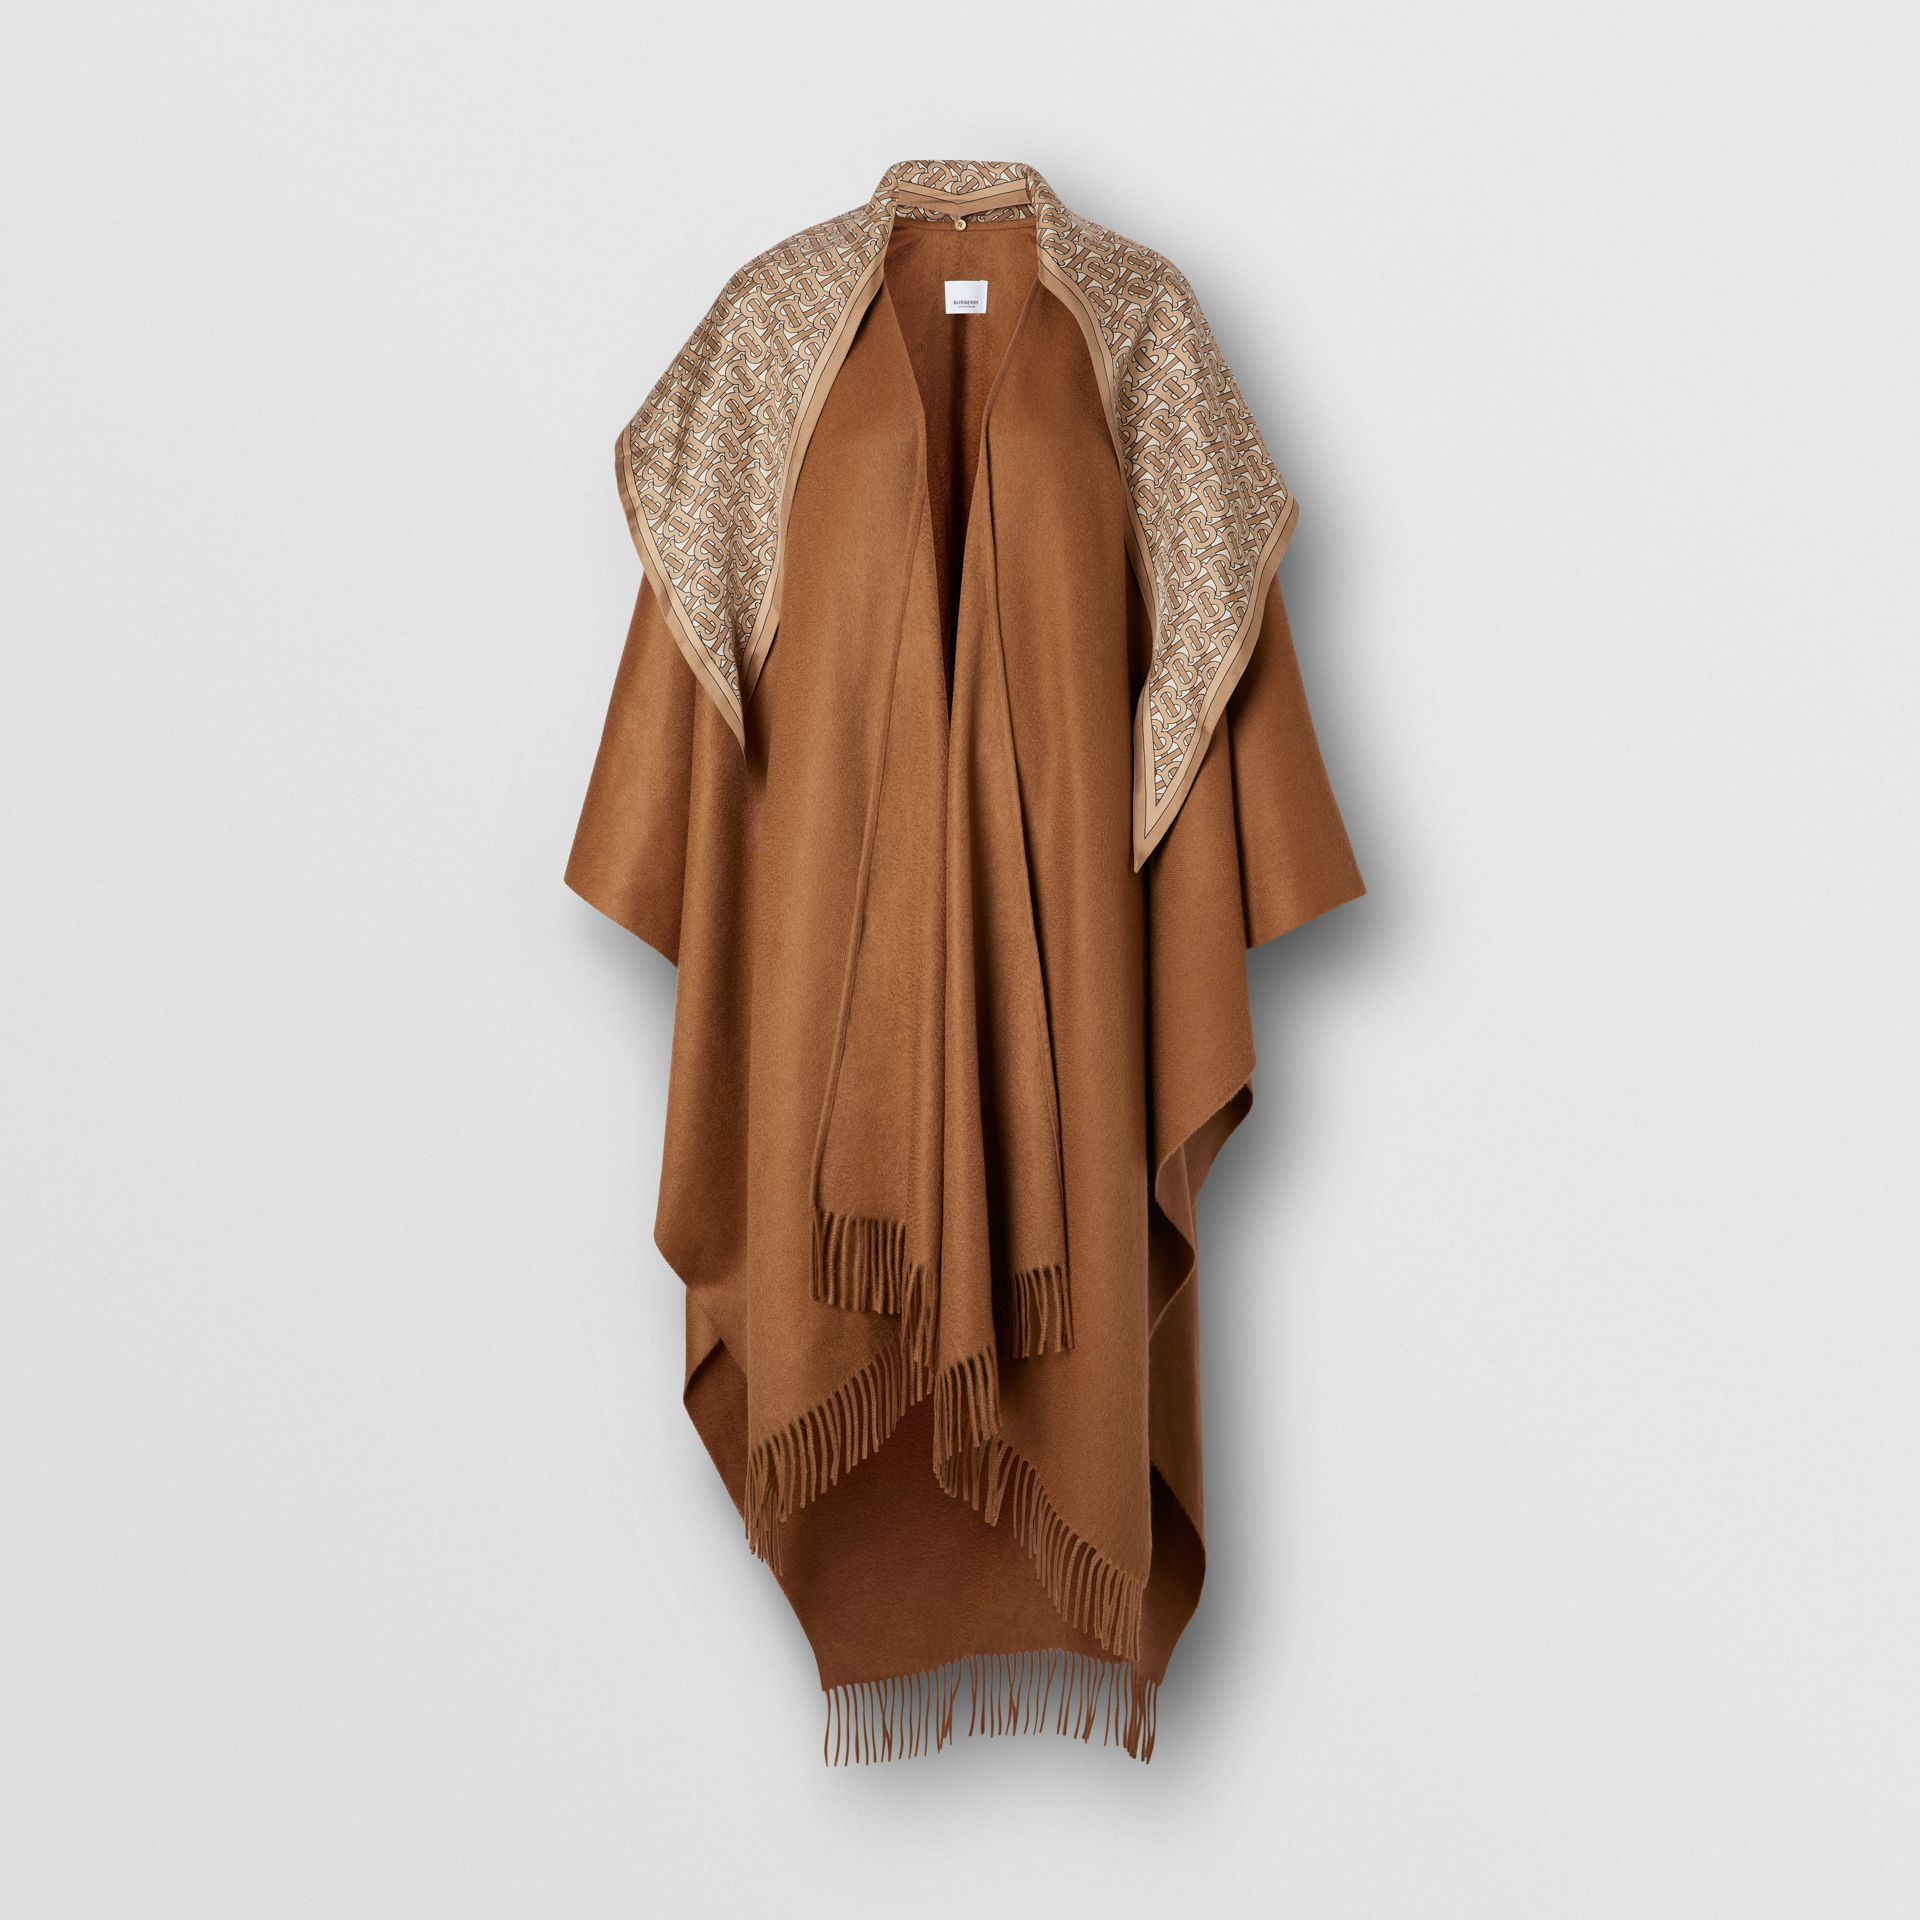 Detachable Monogram Print Scarf Cashmere Cape in Fern - Women | Burberry - gallery image 3